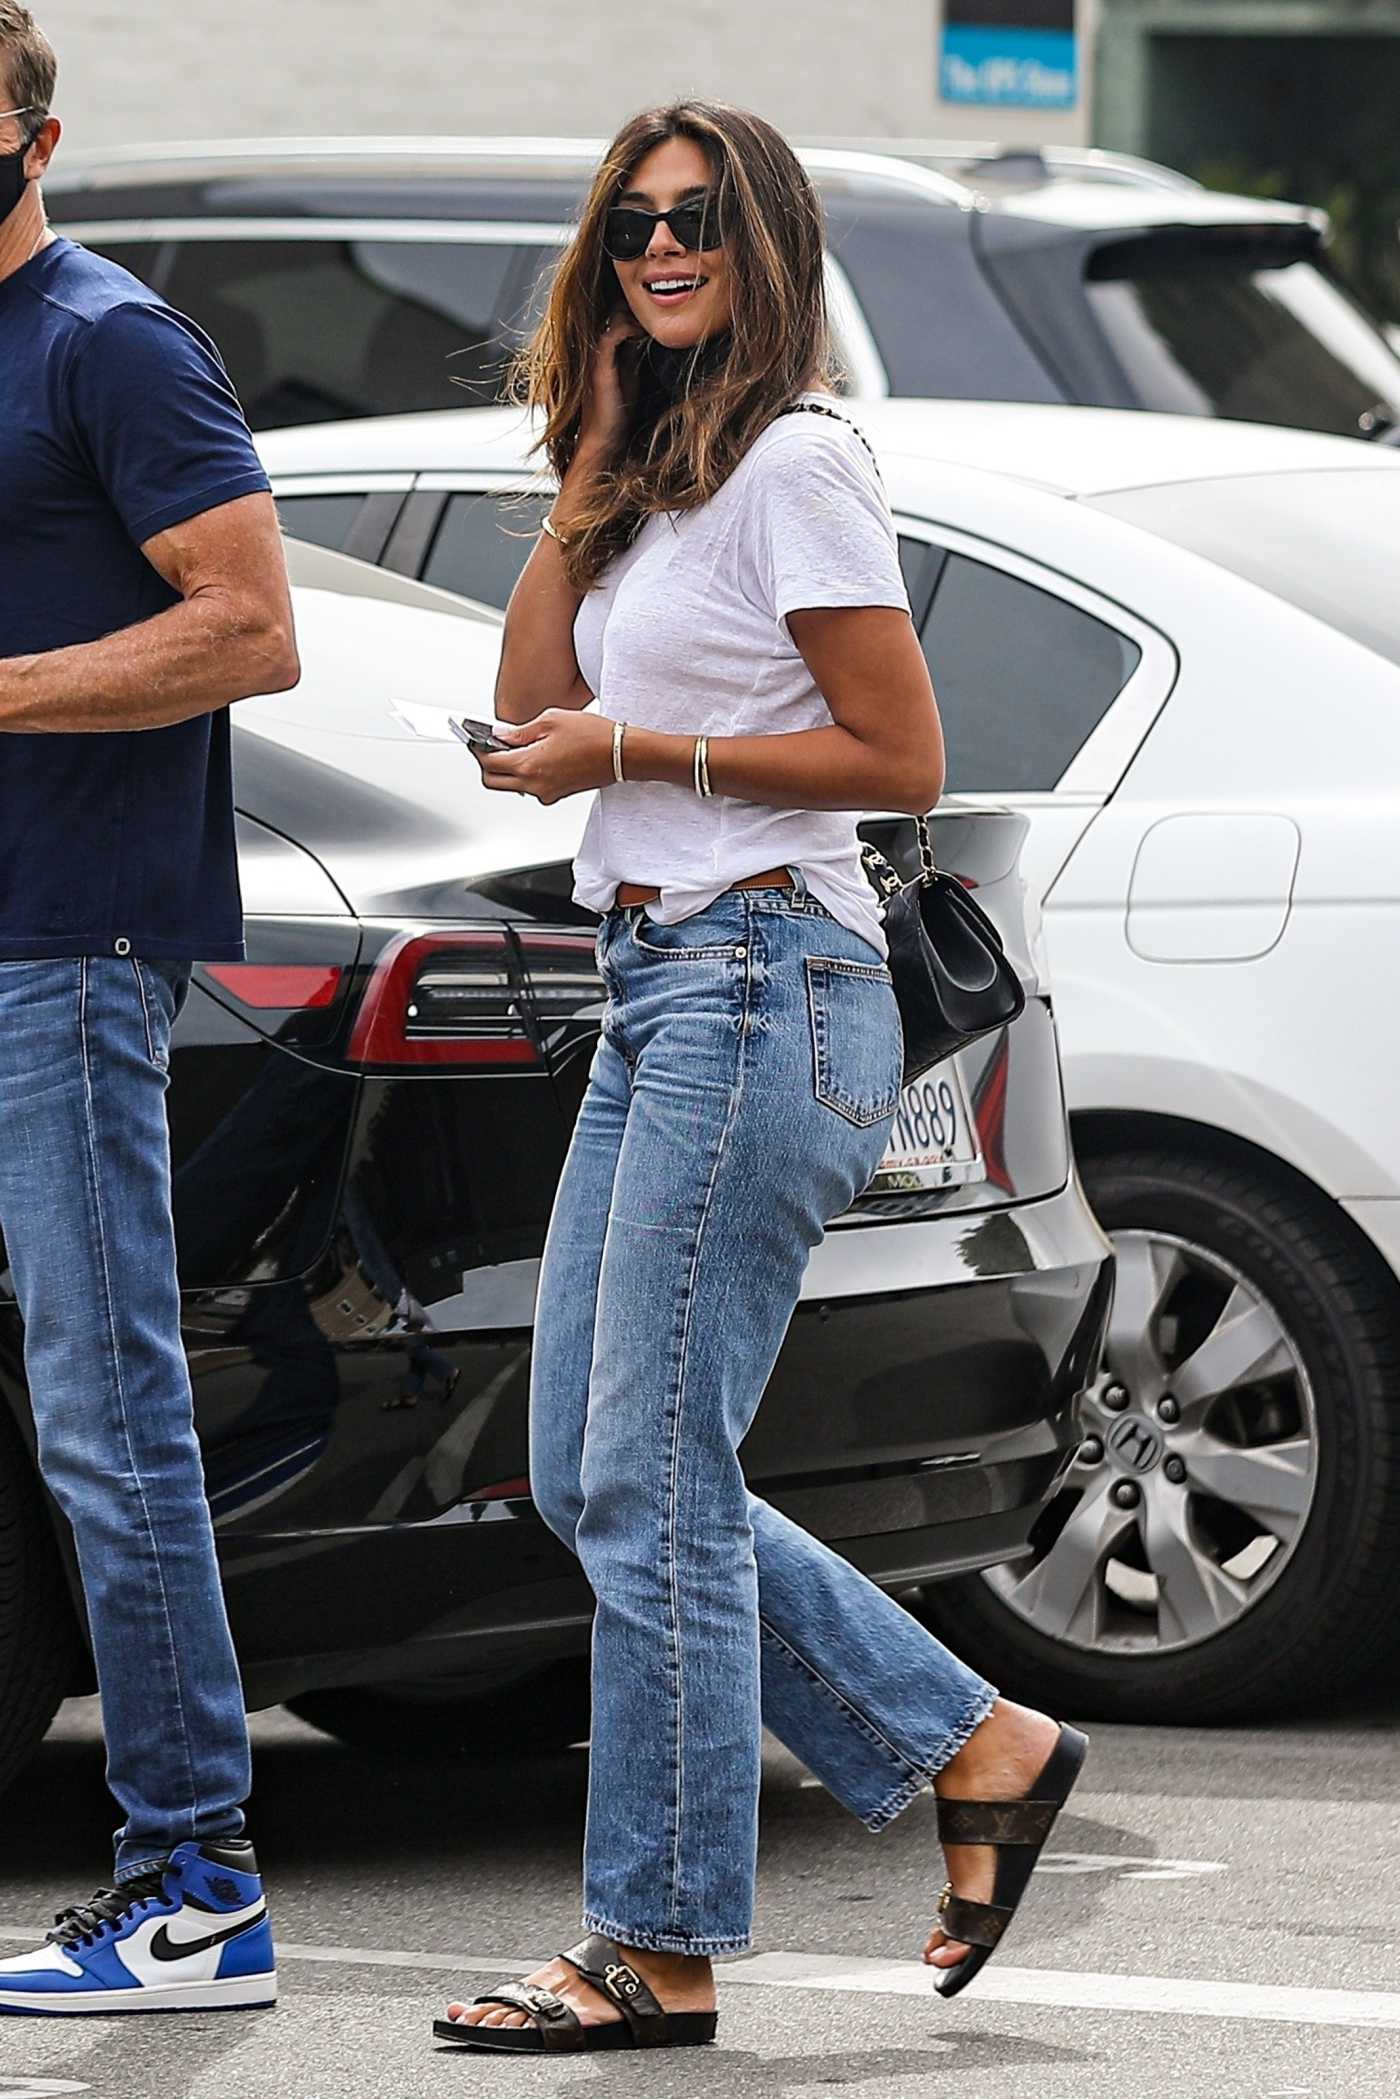 Pia Miller in a White Tee Shops for Jewelry in Beverly Hills 04/07/2021